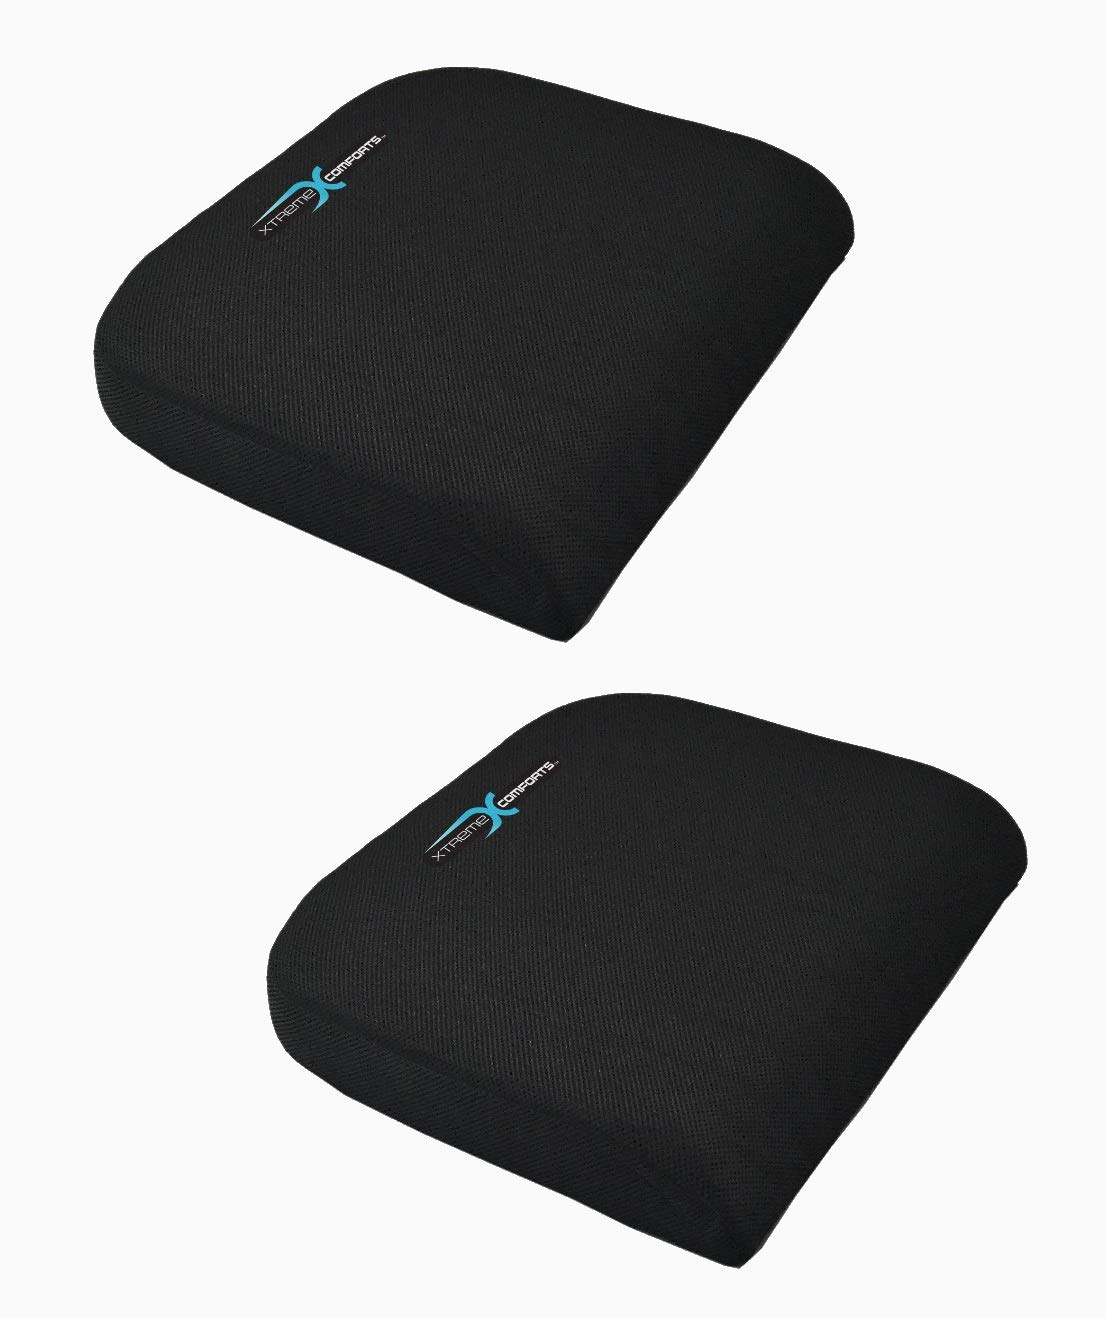 Xtreme Comforts Large Seat Cushion with Carry Handle and Anti Slip Bottom Gives Relief from Back Pain (2 Pack) by Xtreme Comforts